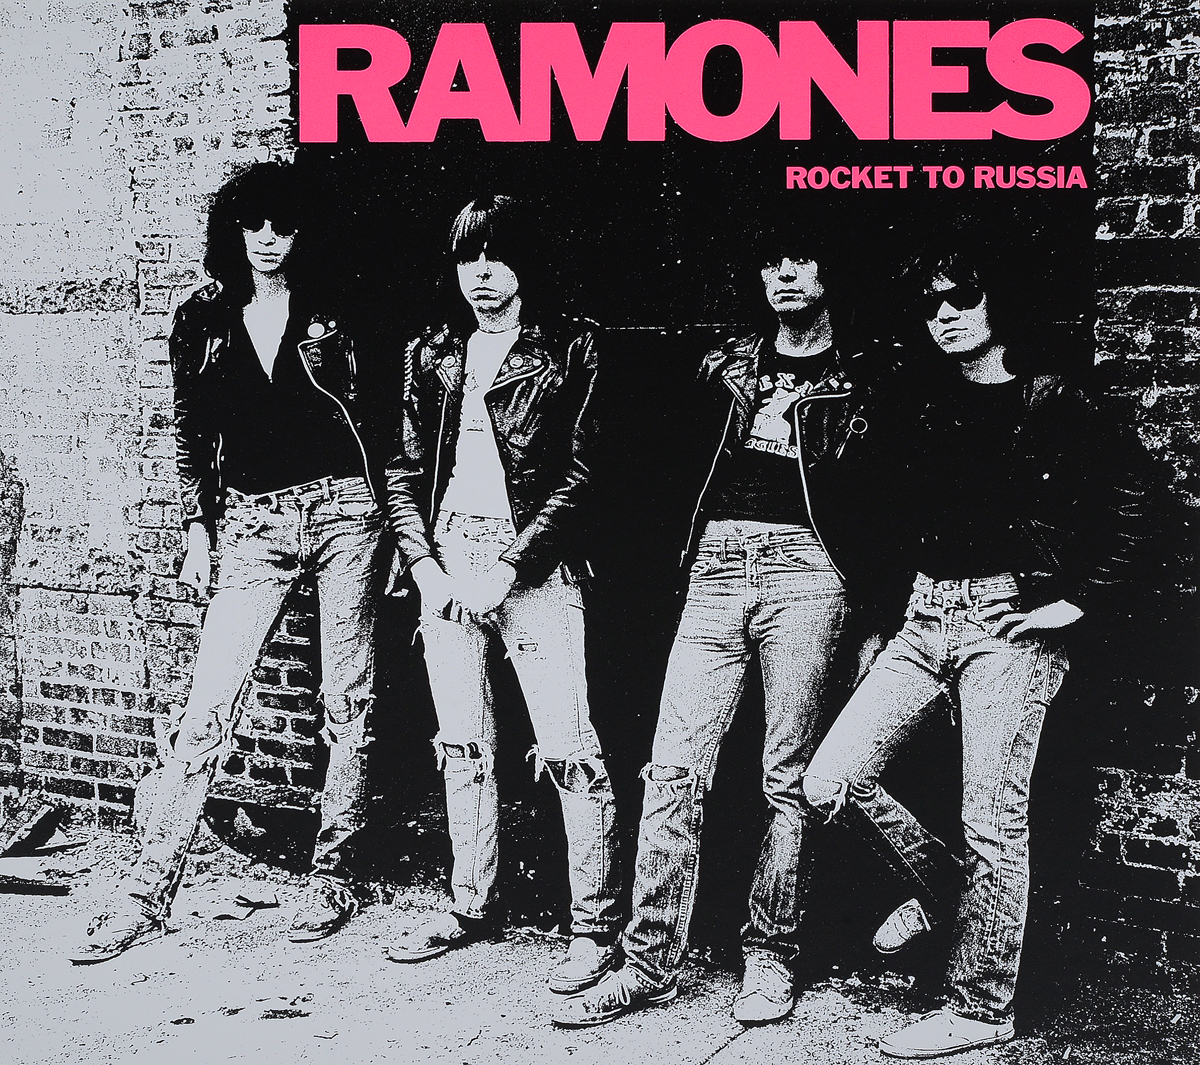 The Ramones Ramones. Rocket To Russia (40th Anniversary Deluxe Edition) (3 CD + LP) batman arkham asylum 25th anniversary deluxe edition